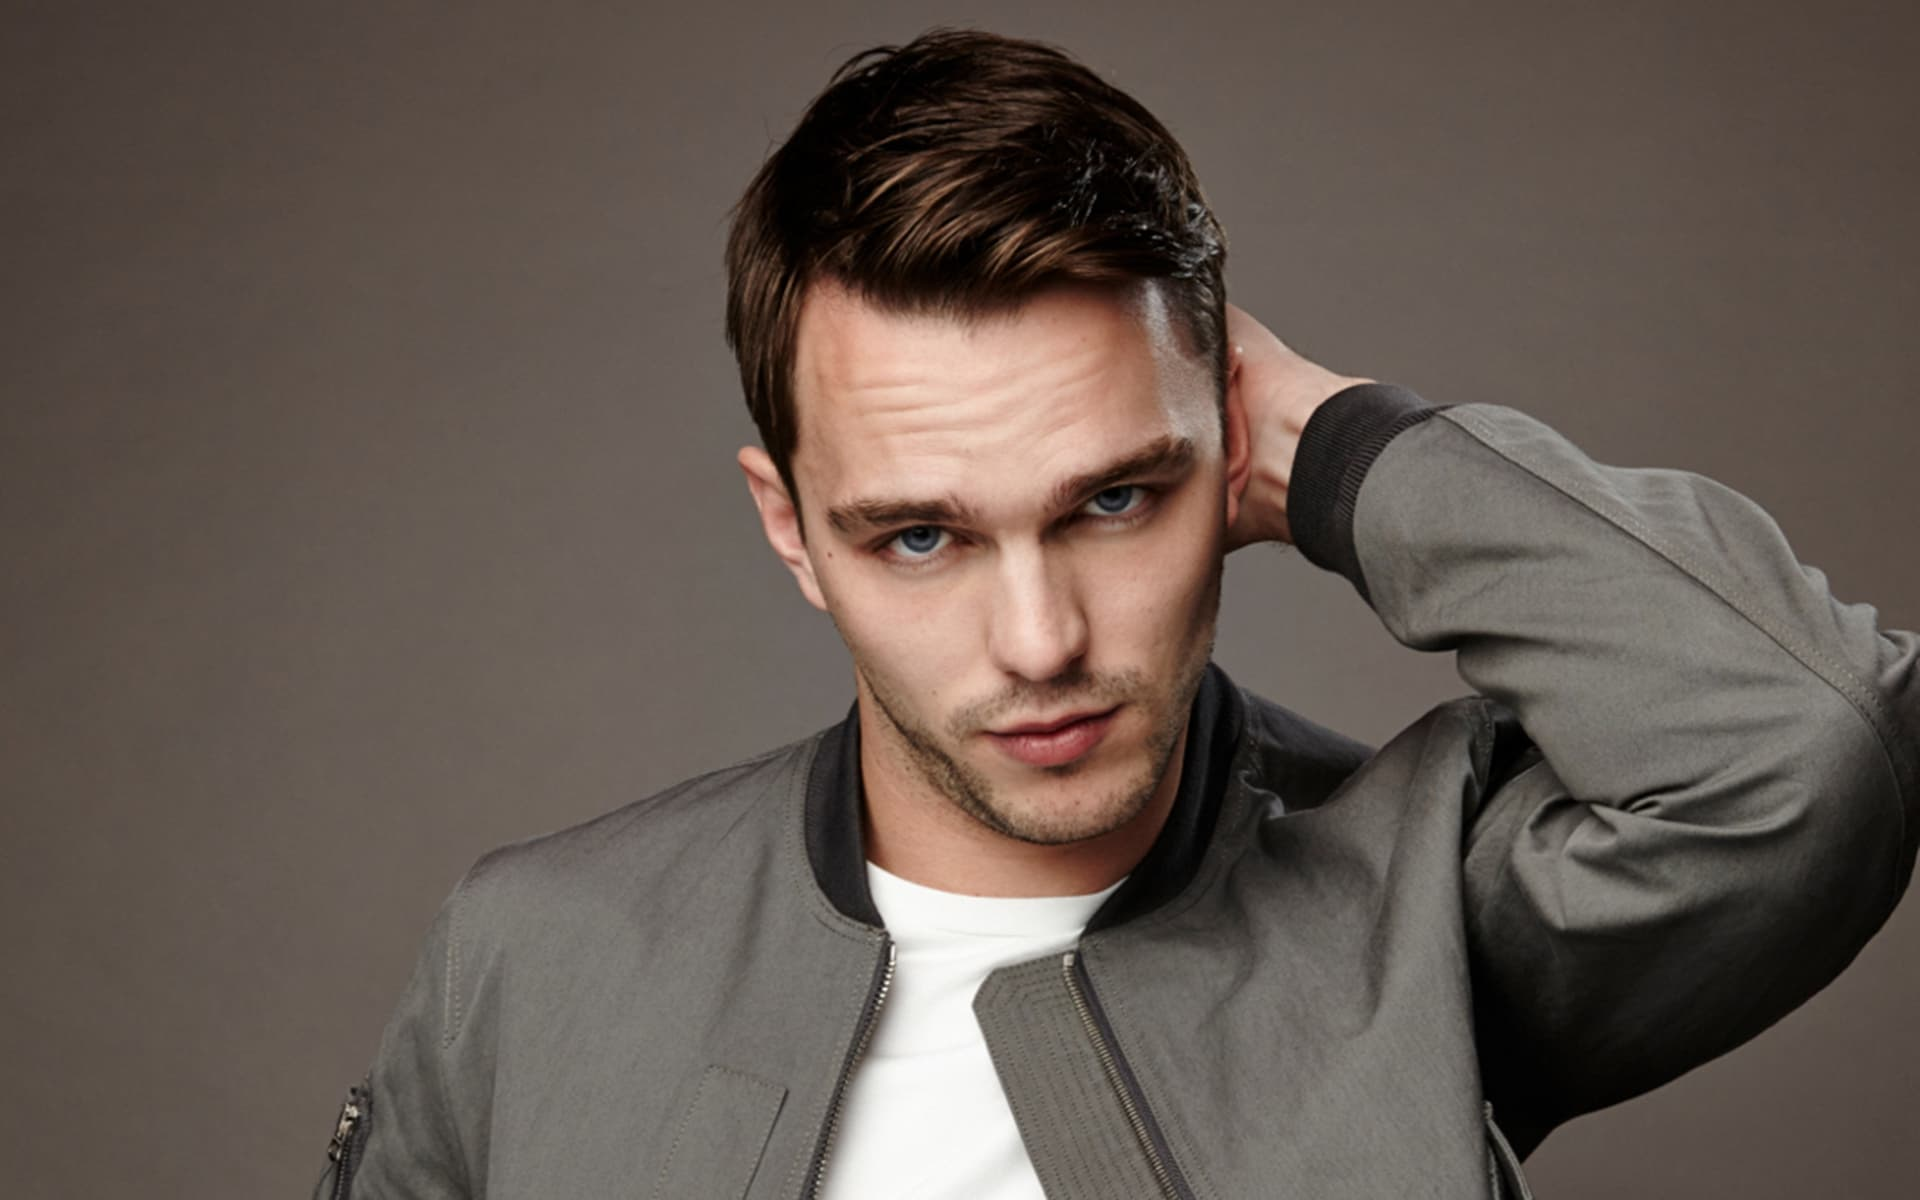 13+ Nicholas Hoult wallpapers High Quality Resolution Download